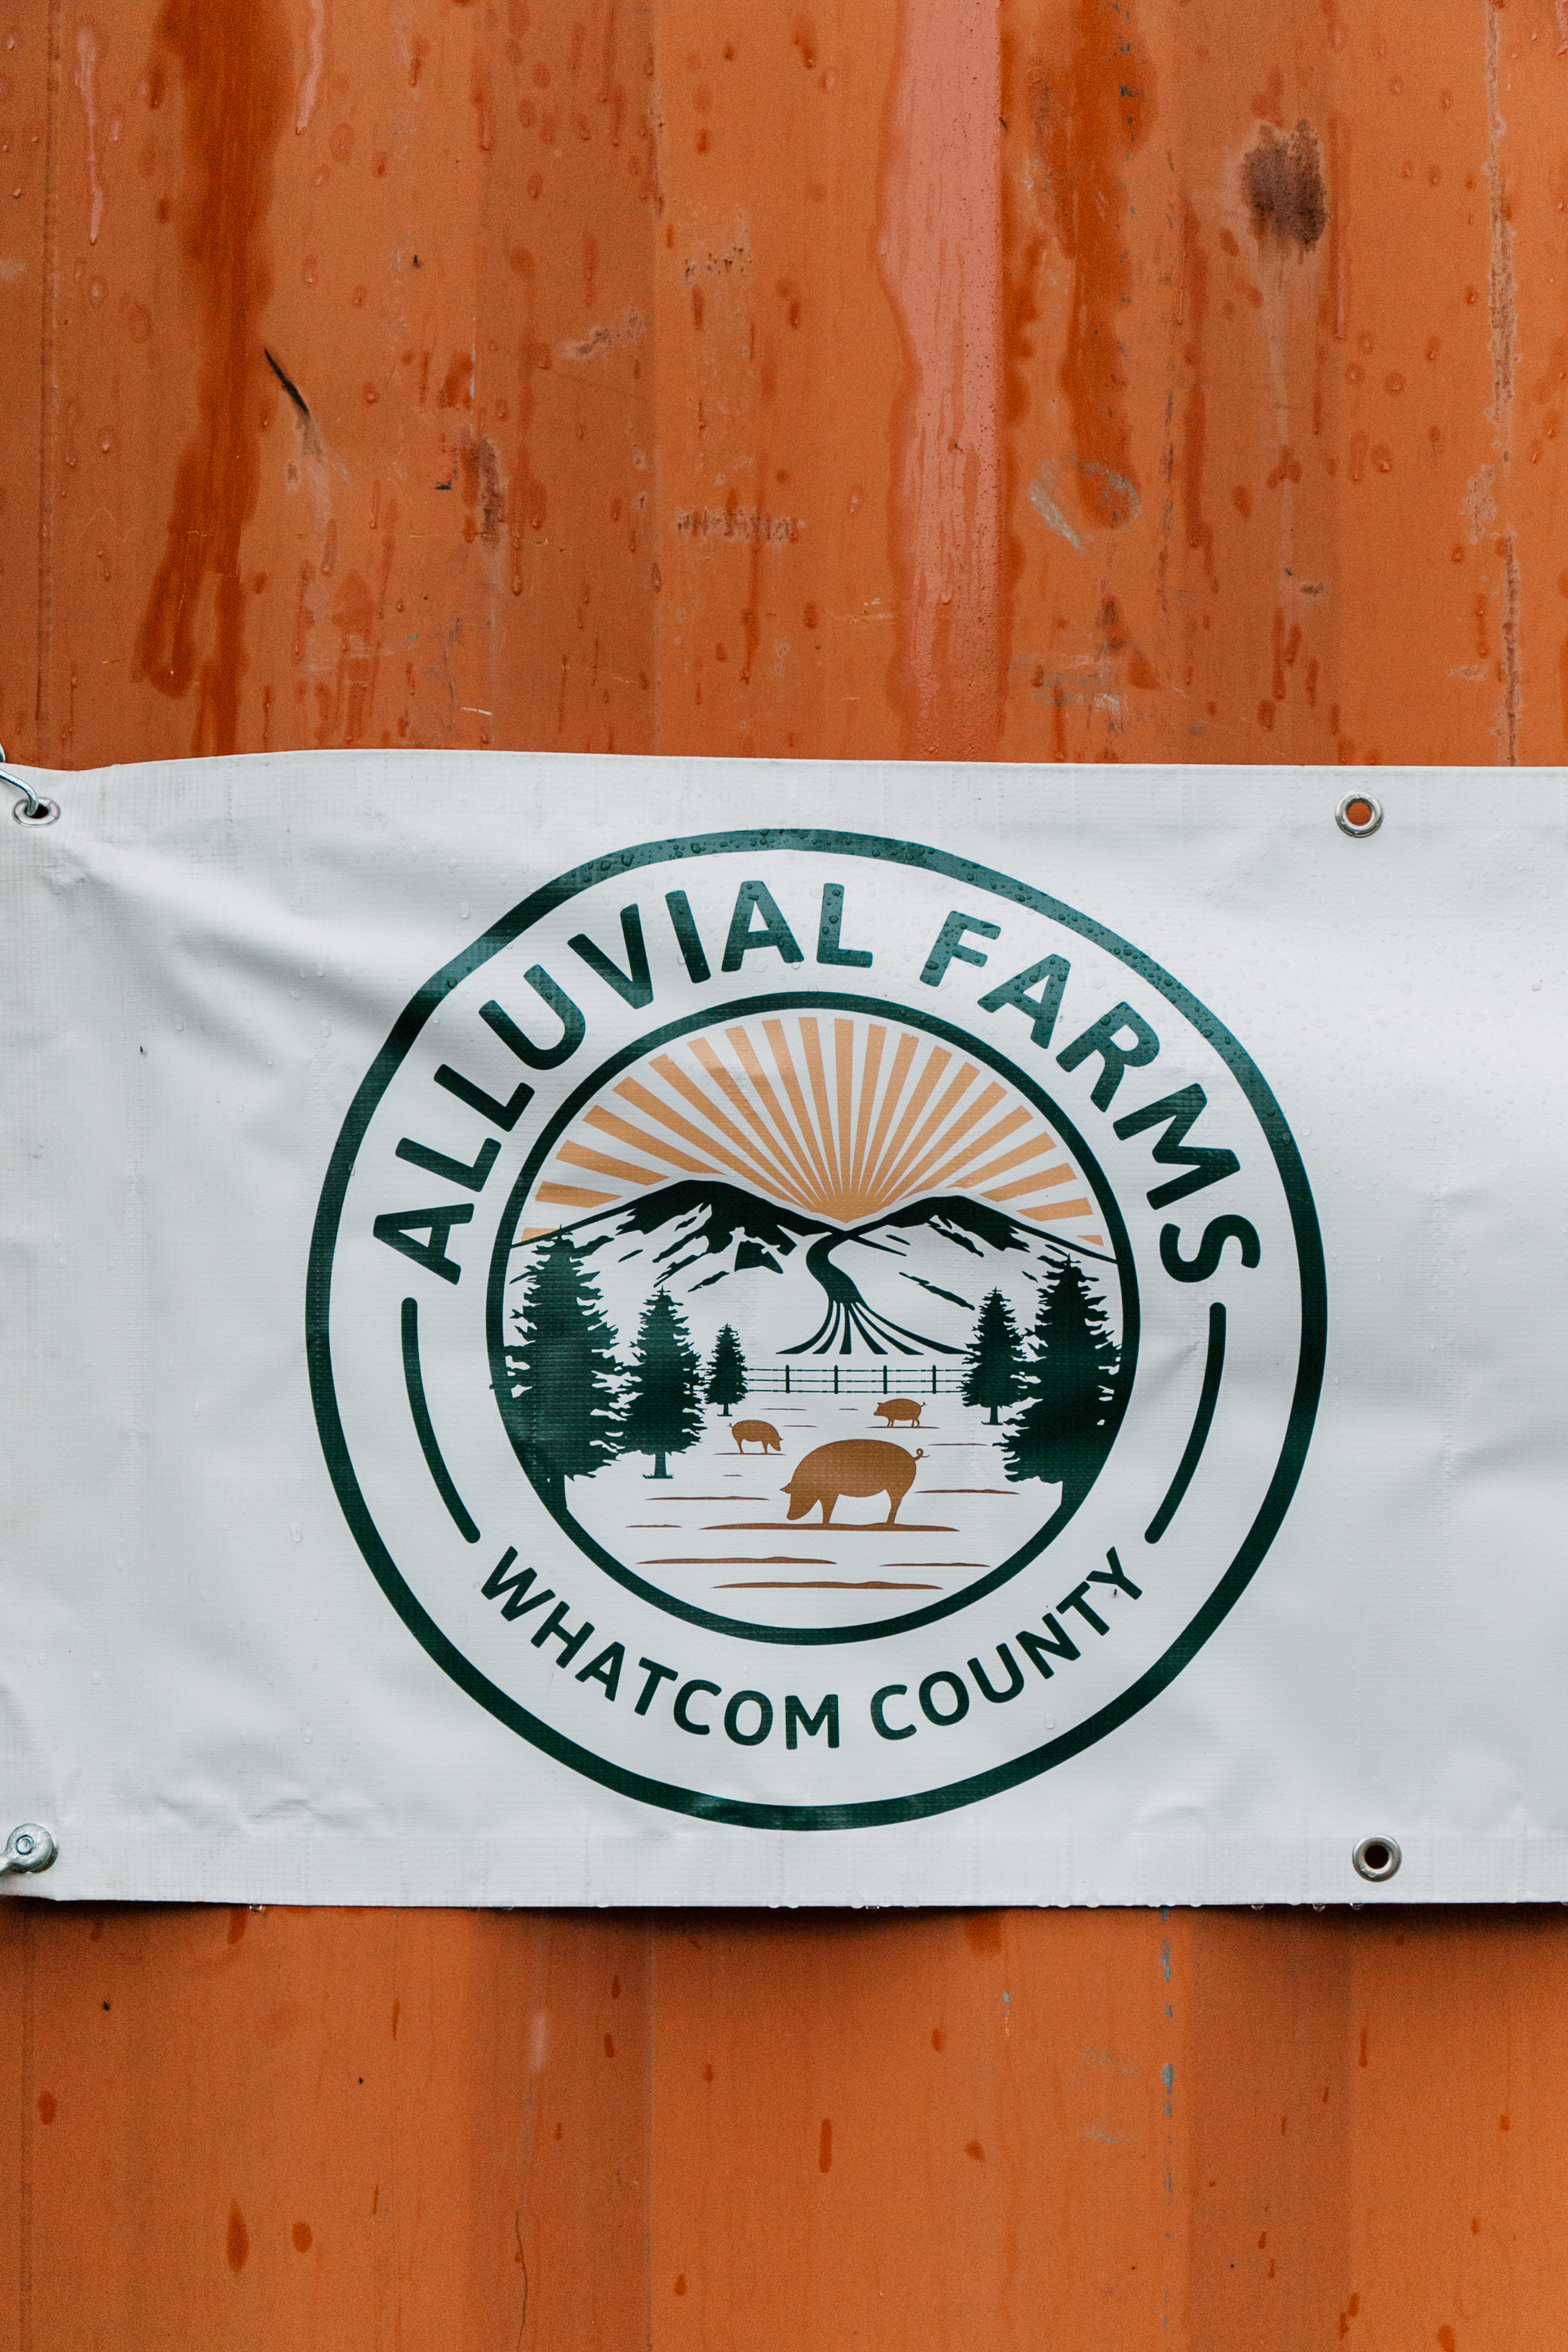 Alluvial Farms returns to Bellingham Farmers Market - This Saturday October 20, from 10 - 3 pm